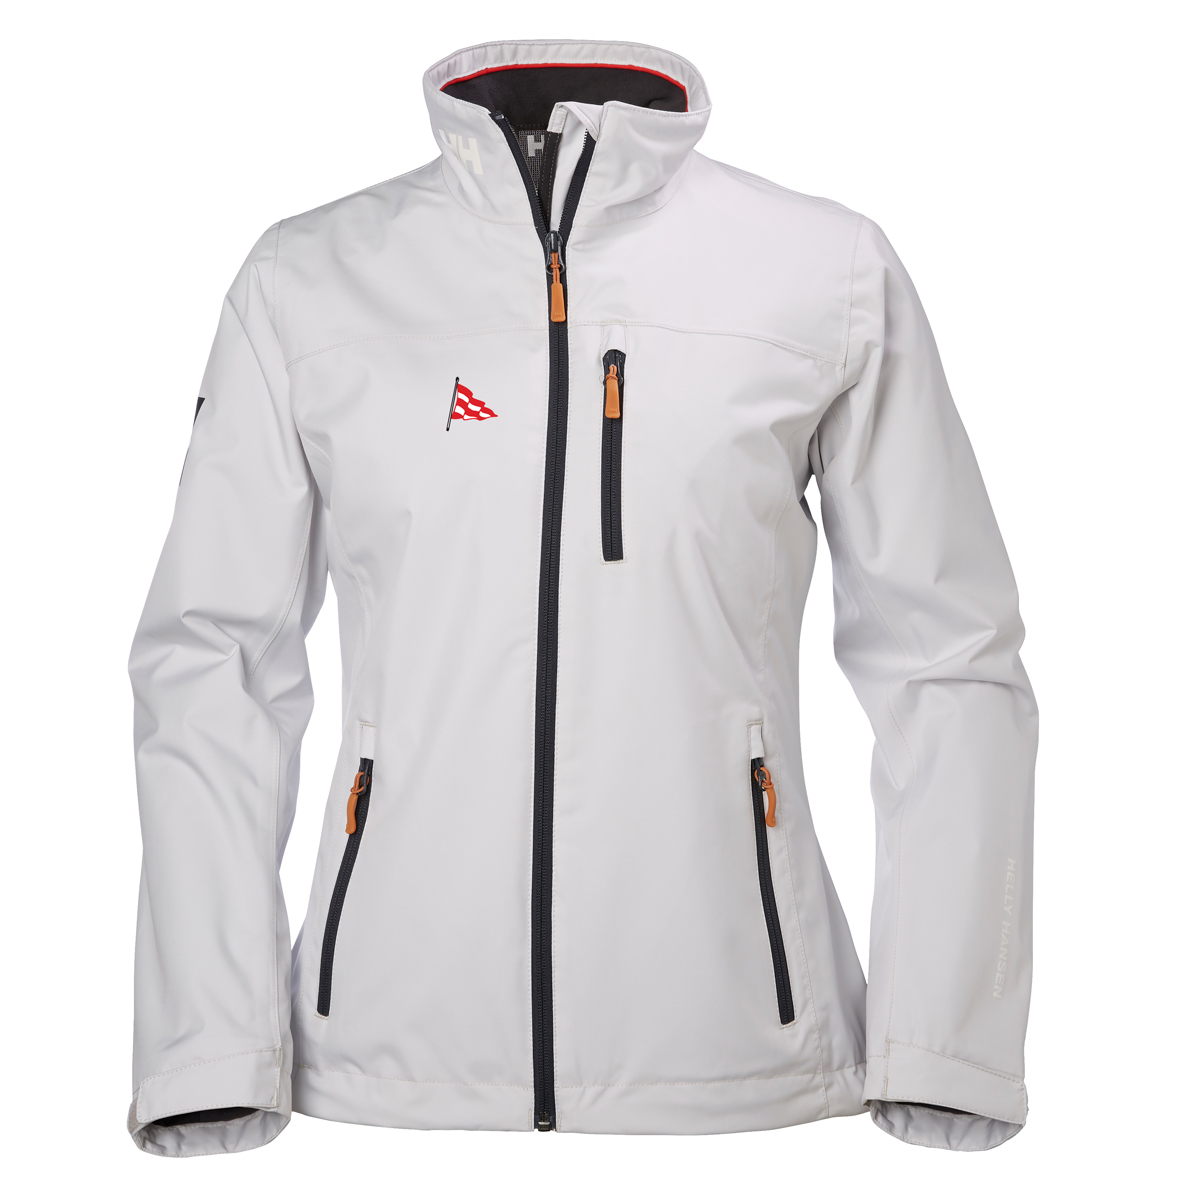 Black Rock Yacht Club - Women's Helly Hansen Crew Jacket